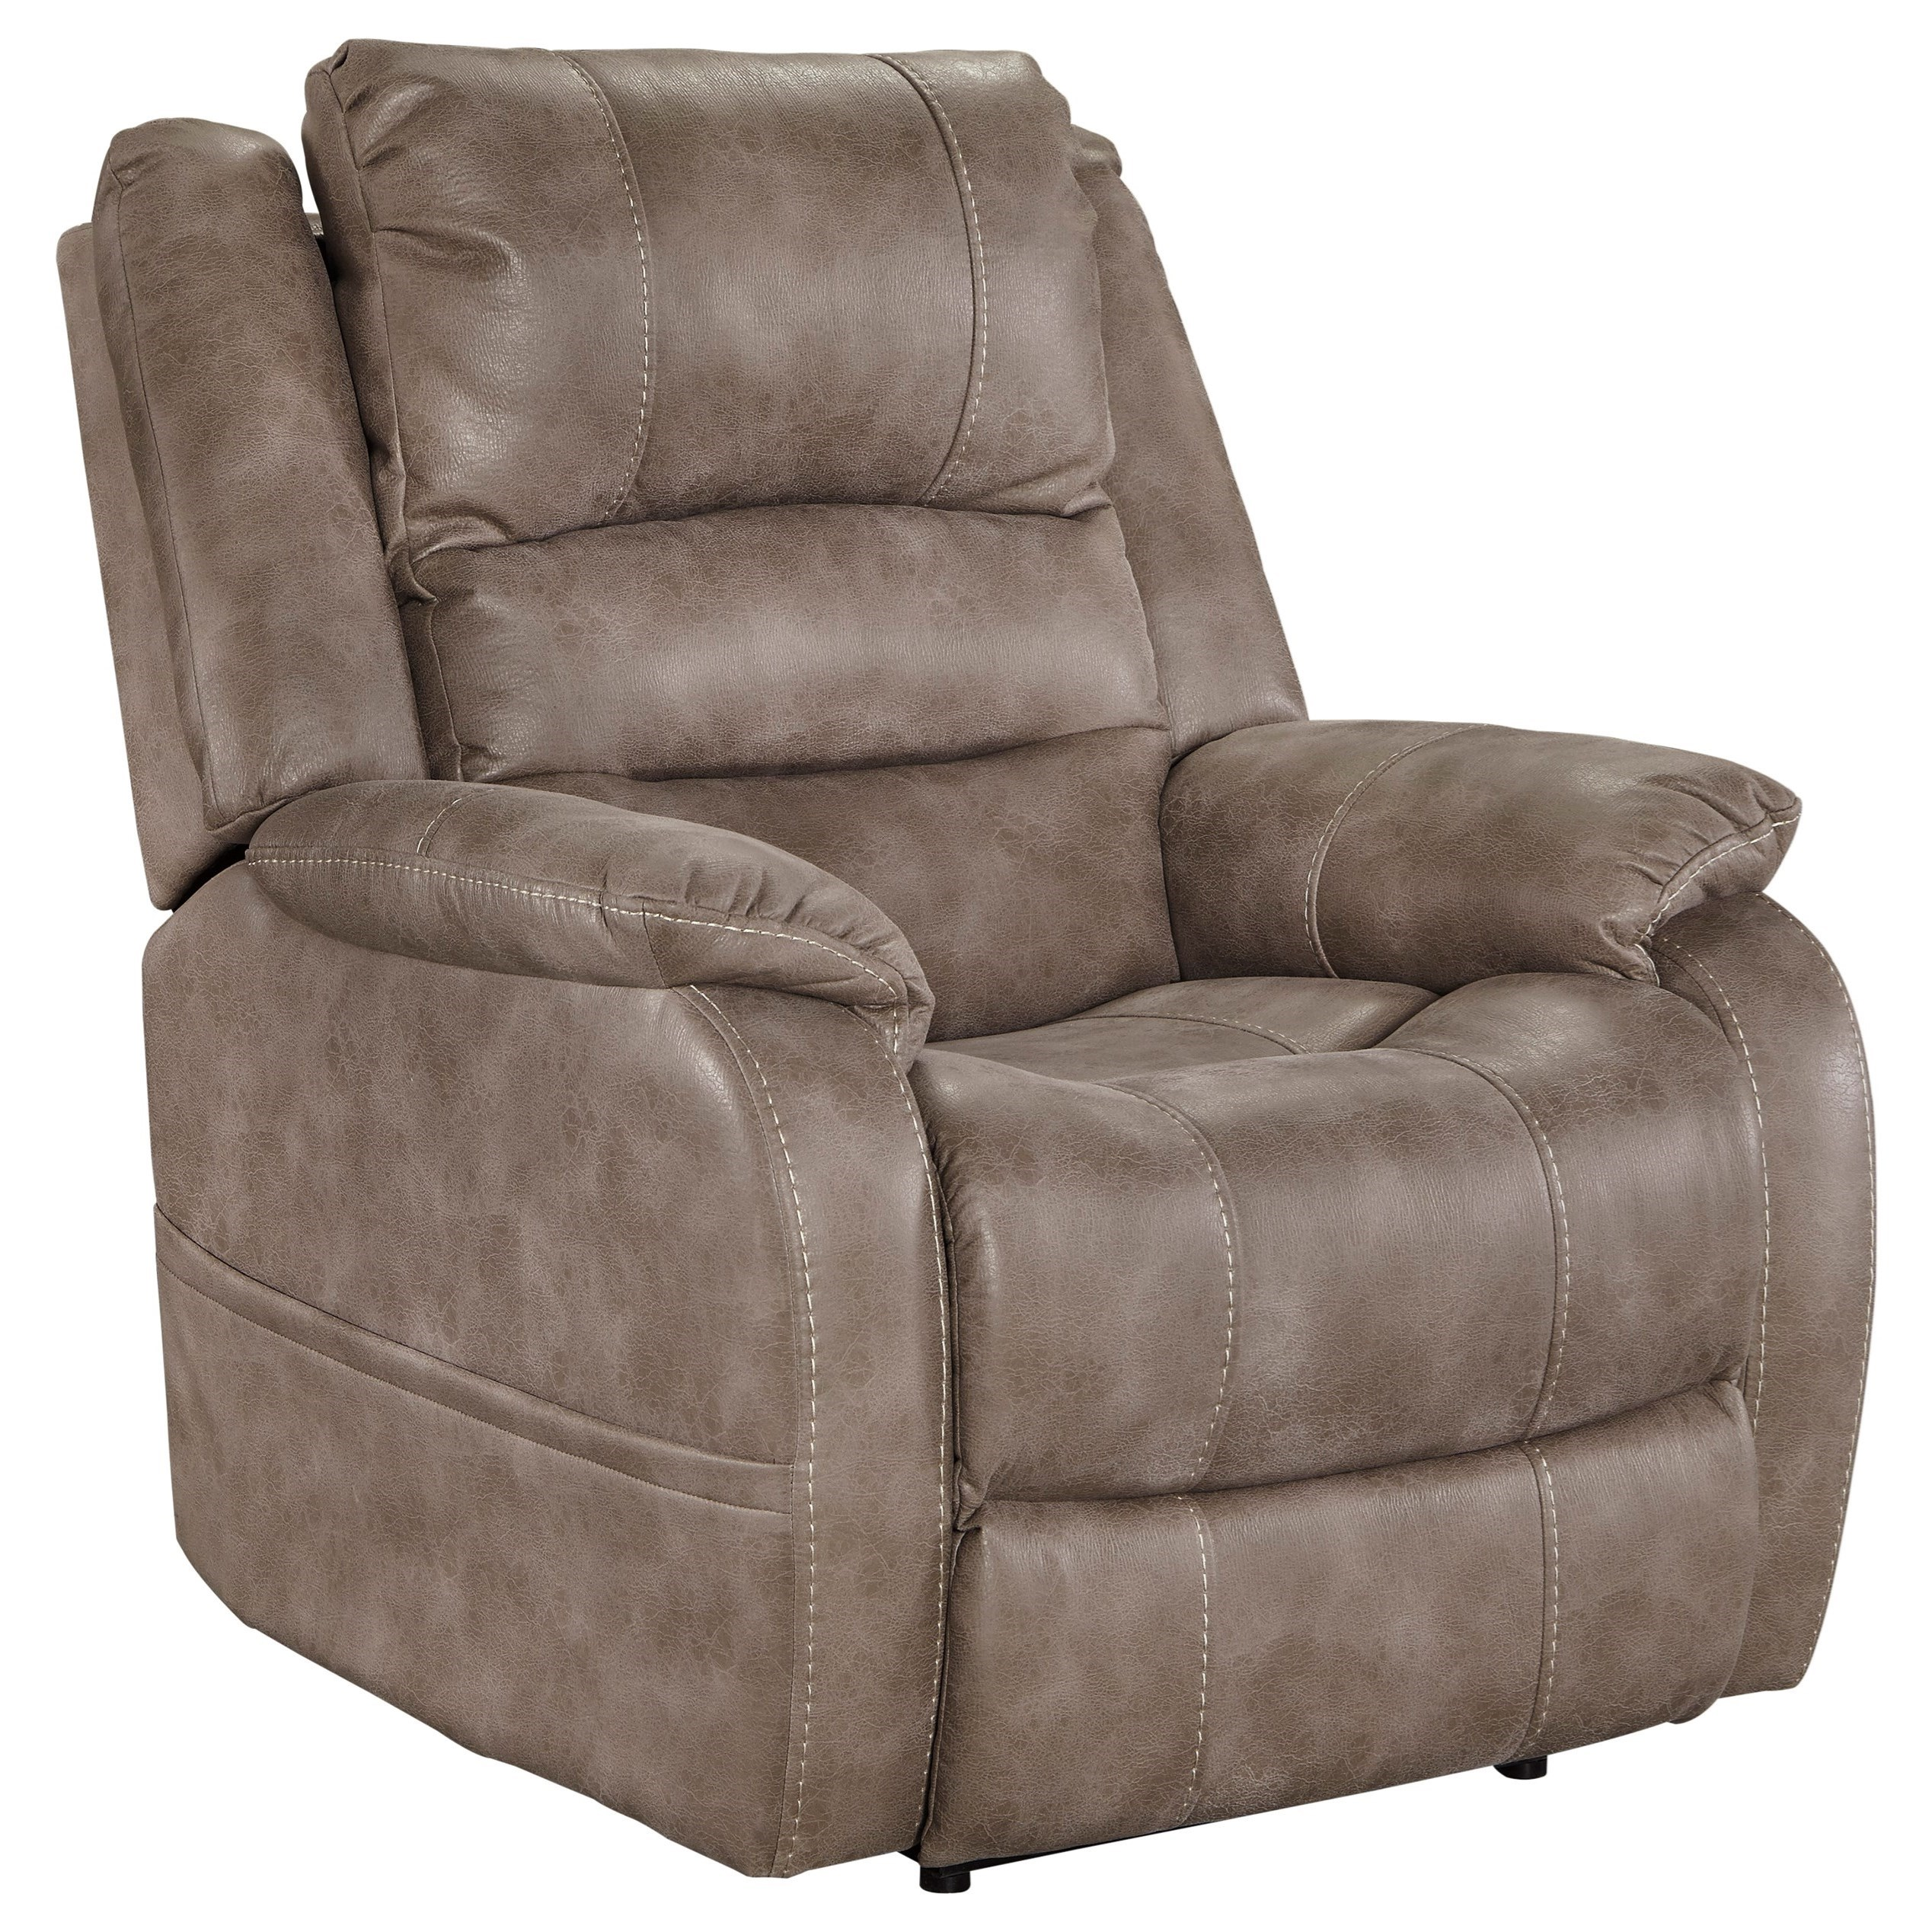 Signature Design by Ashley Barling Power Recliner w/ Adjustable Headrest - Item Number: 6880313